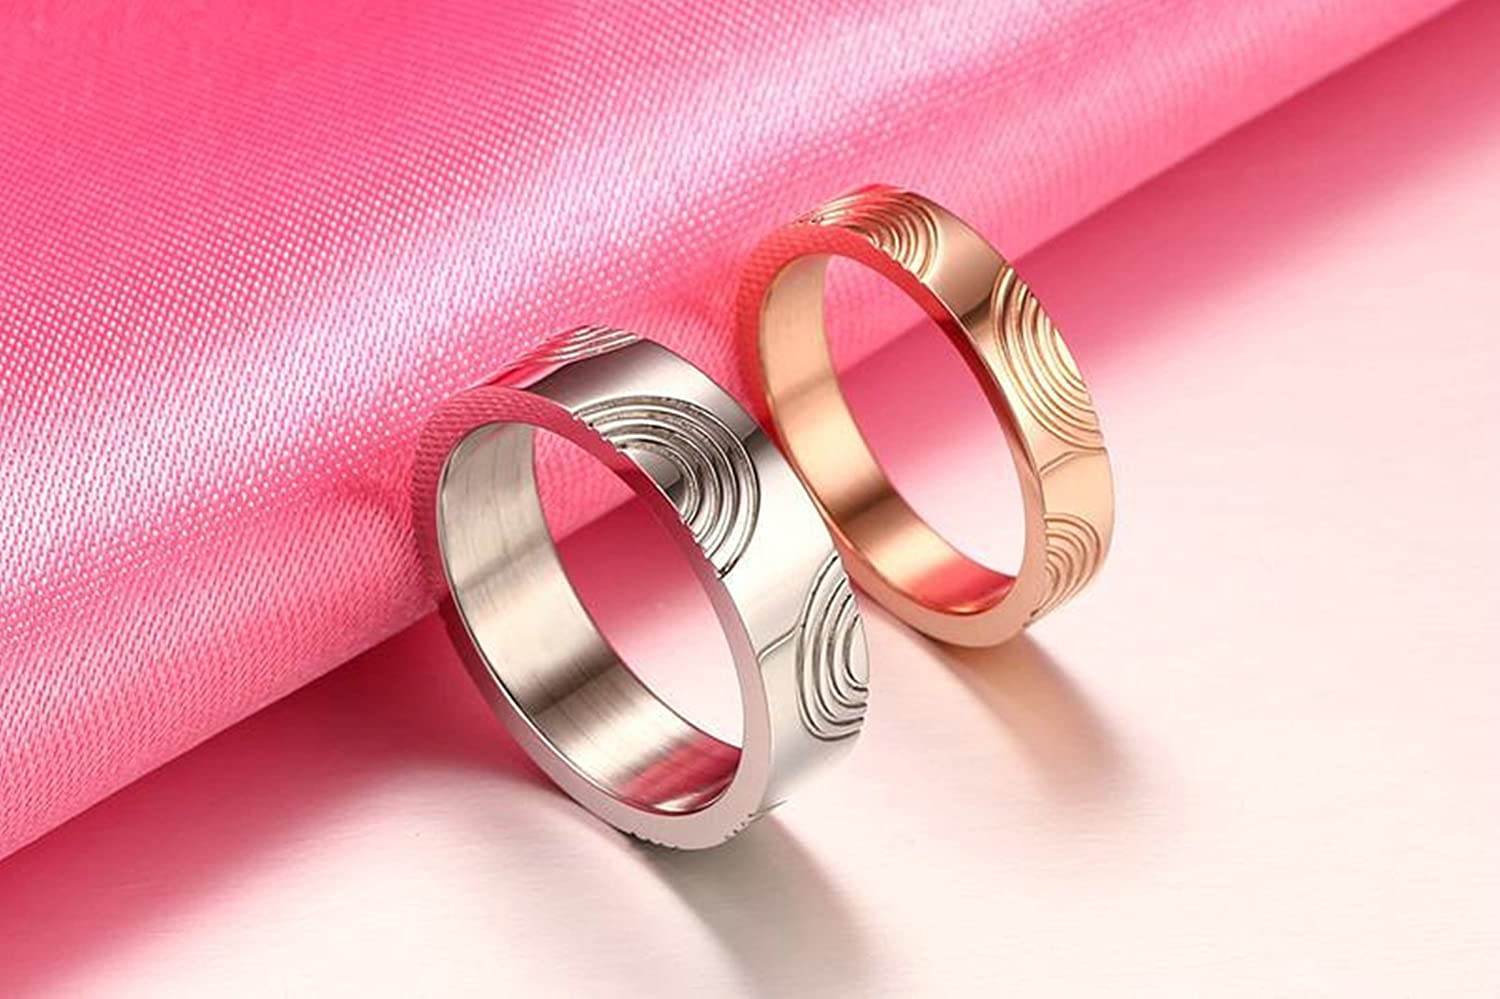 SanJiu Jewelry Couple Ring Wedding Rings Stainless Steel Ring ...